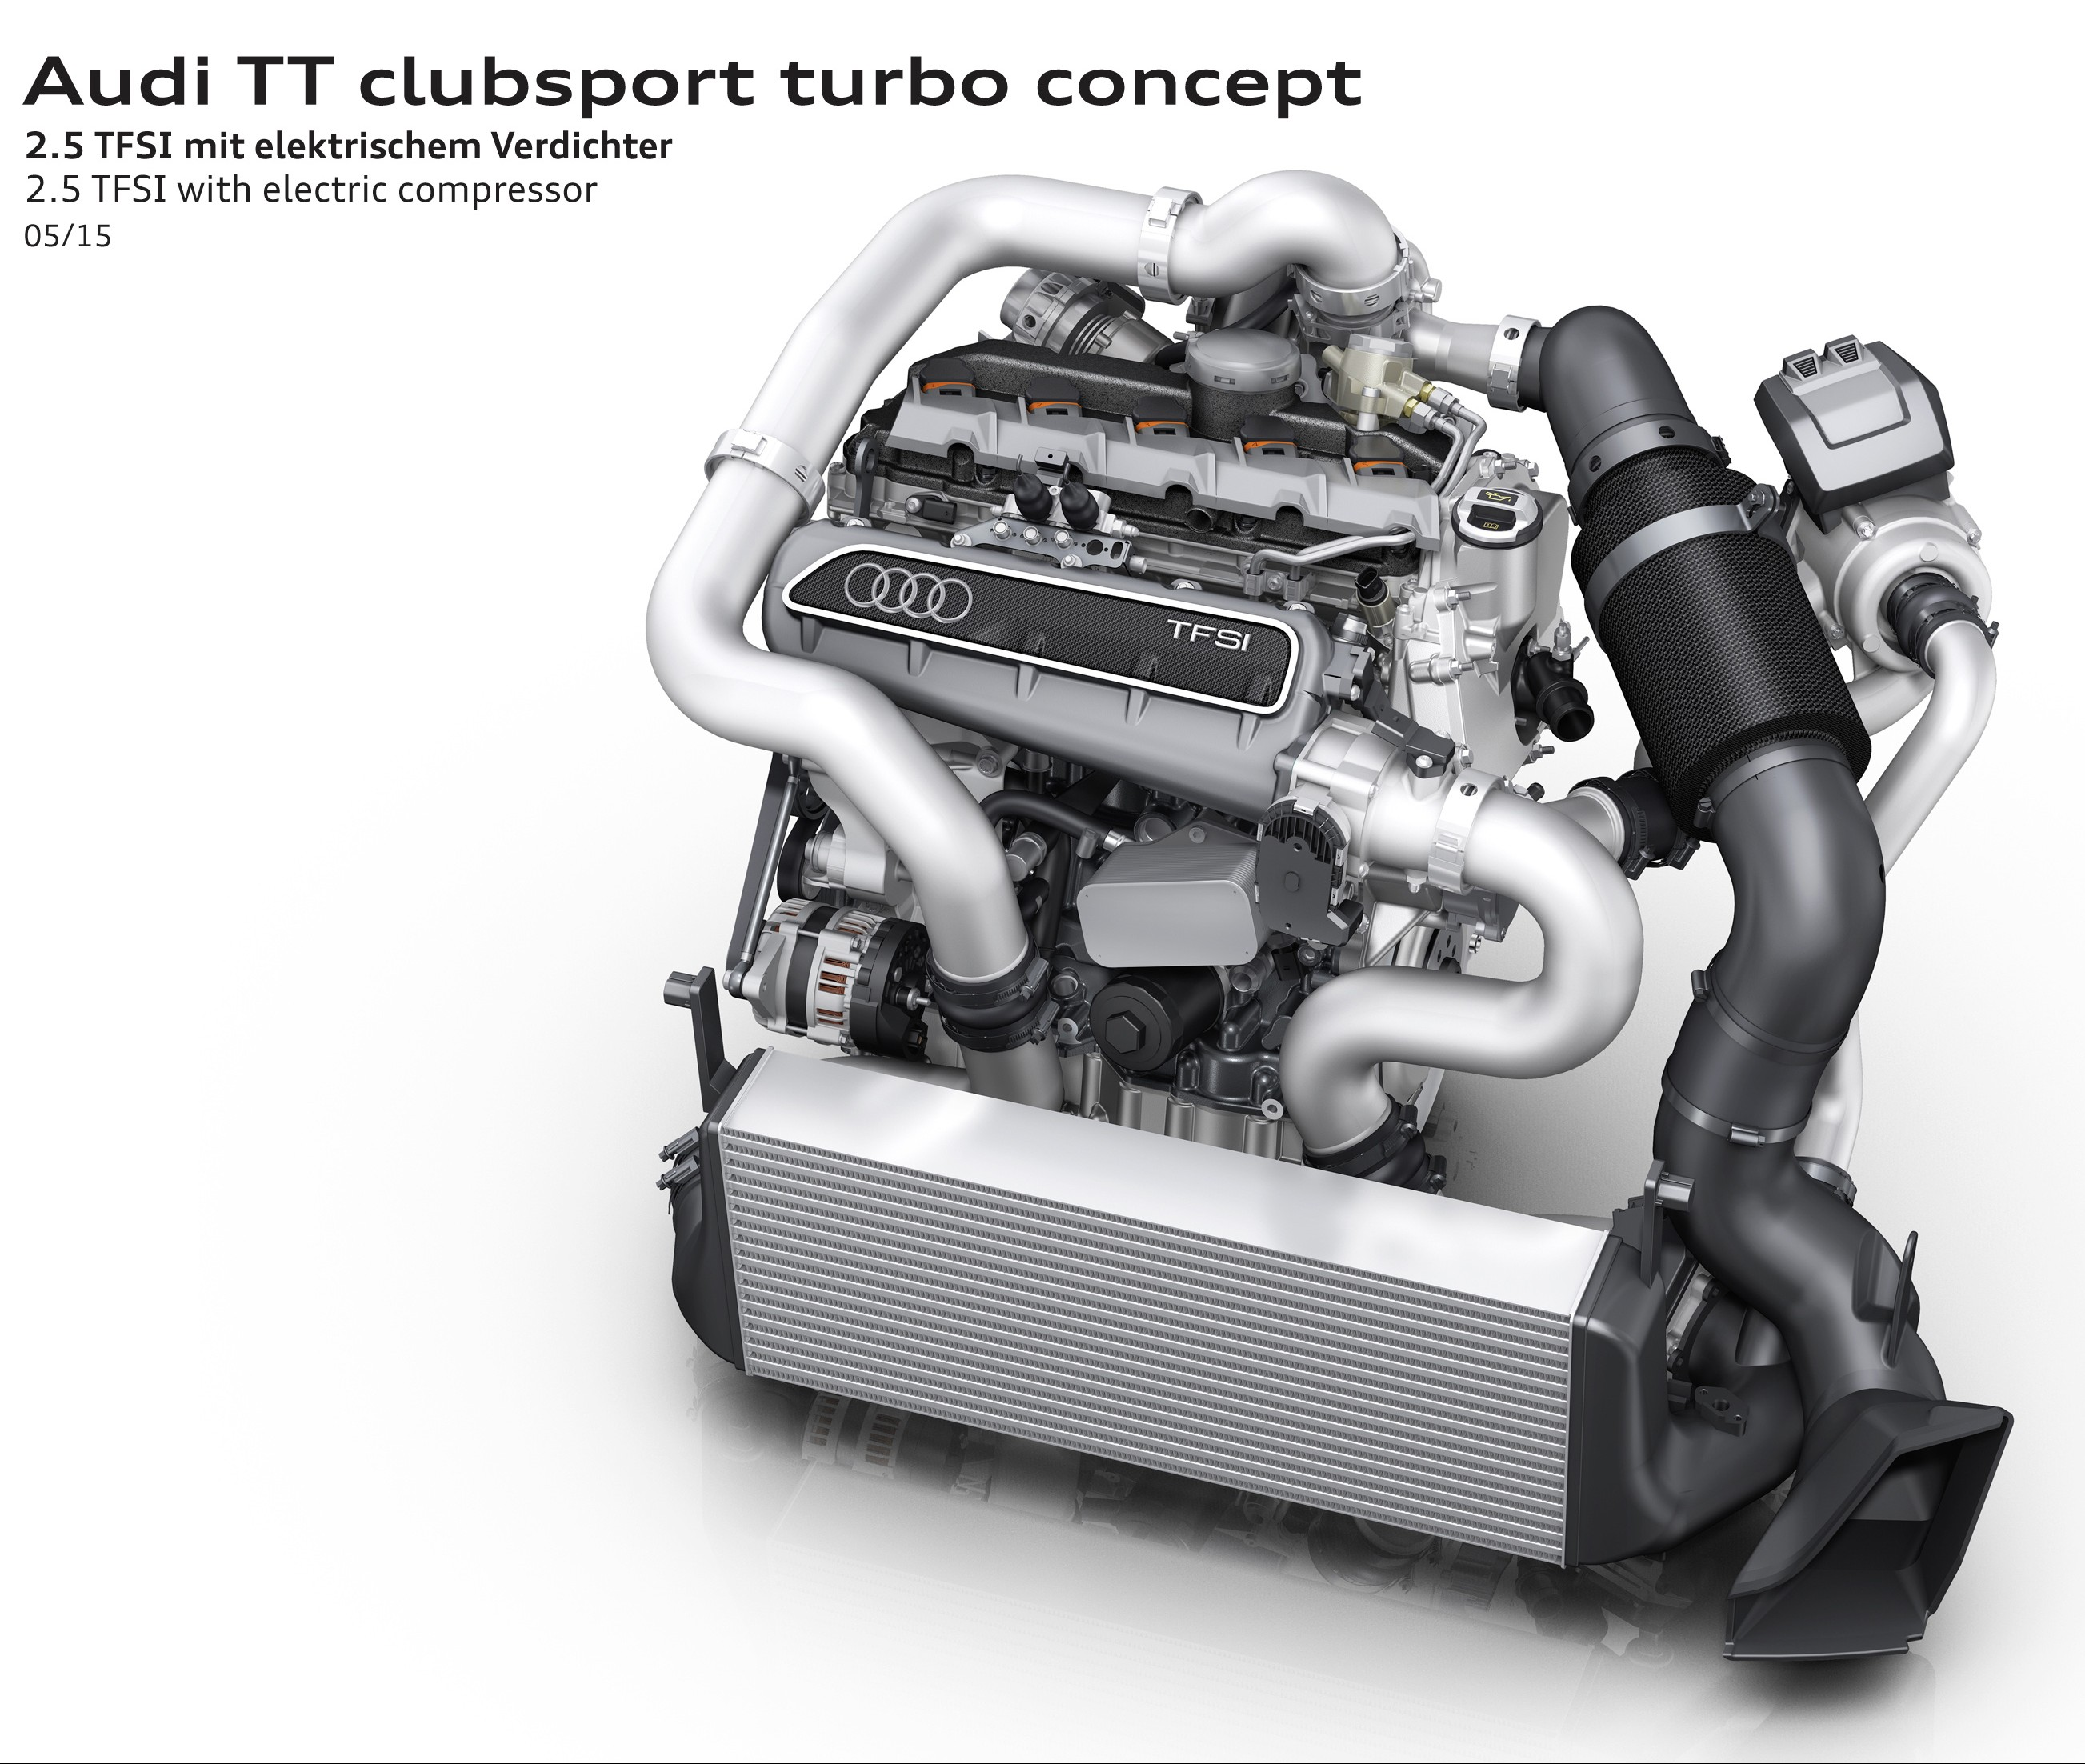 Audi Tt Clubsport Turbo Concept For W 246 Rthersee 2015 Image